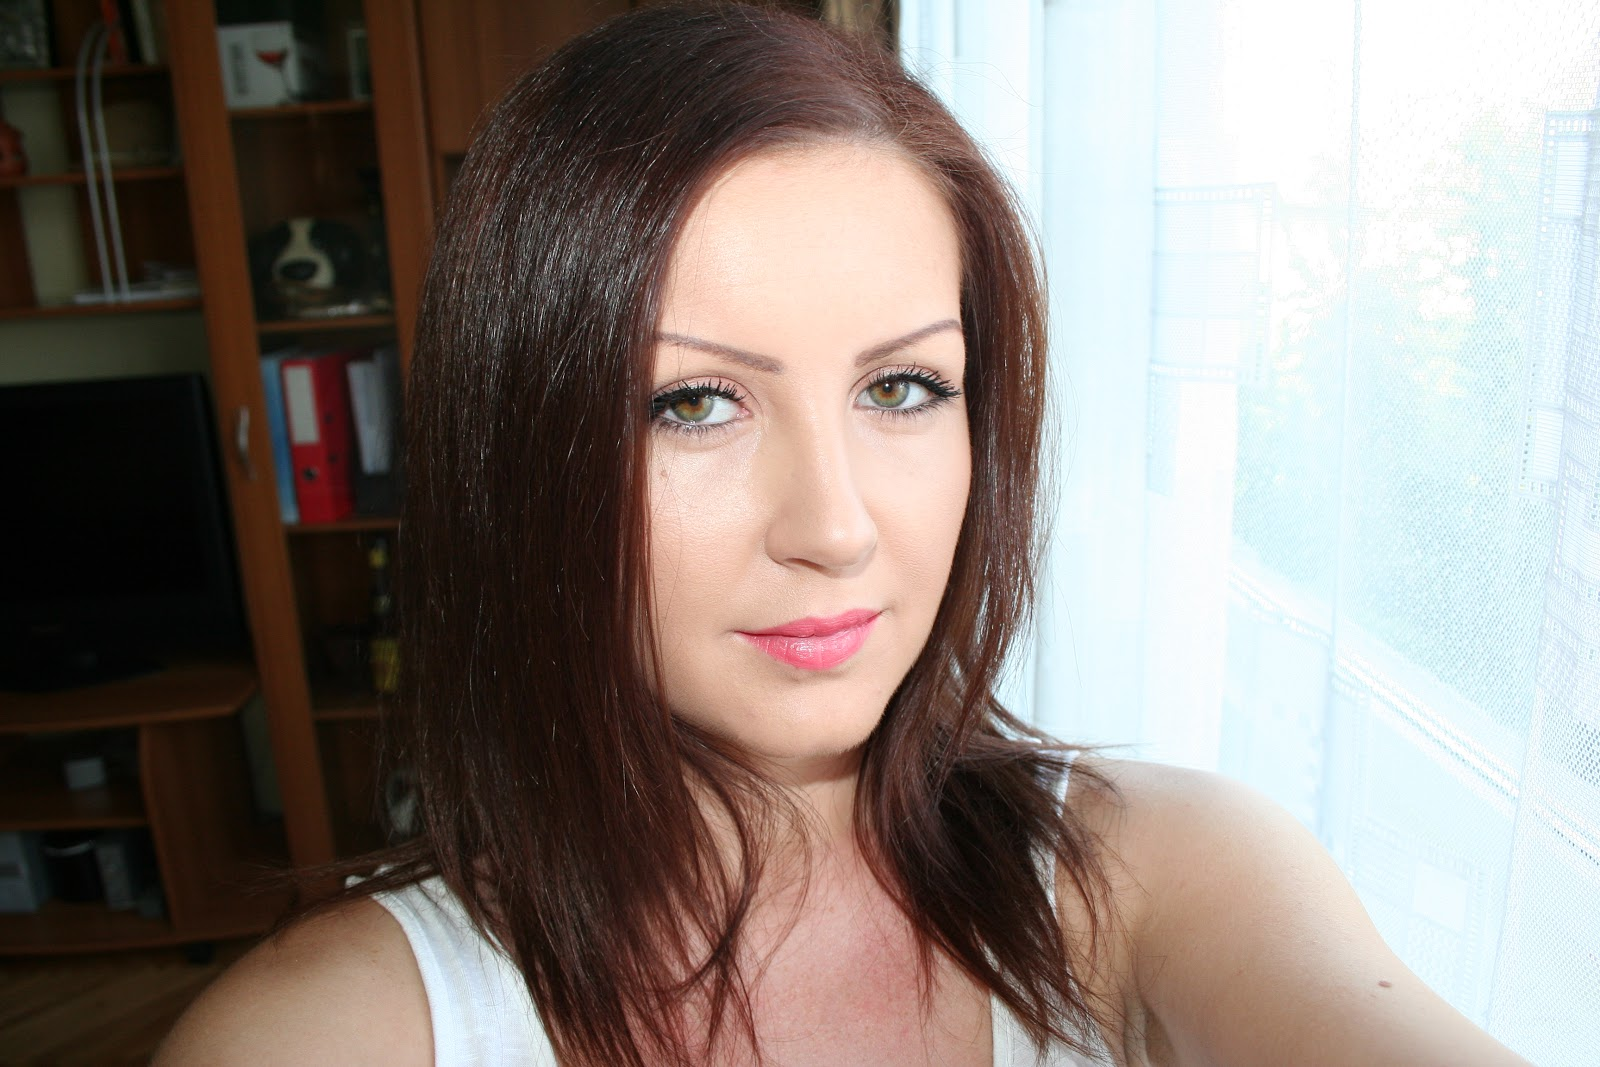 After another colouring with the same dye (Schwarzkopf Mousse ...